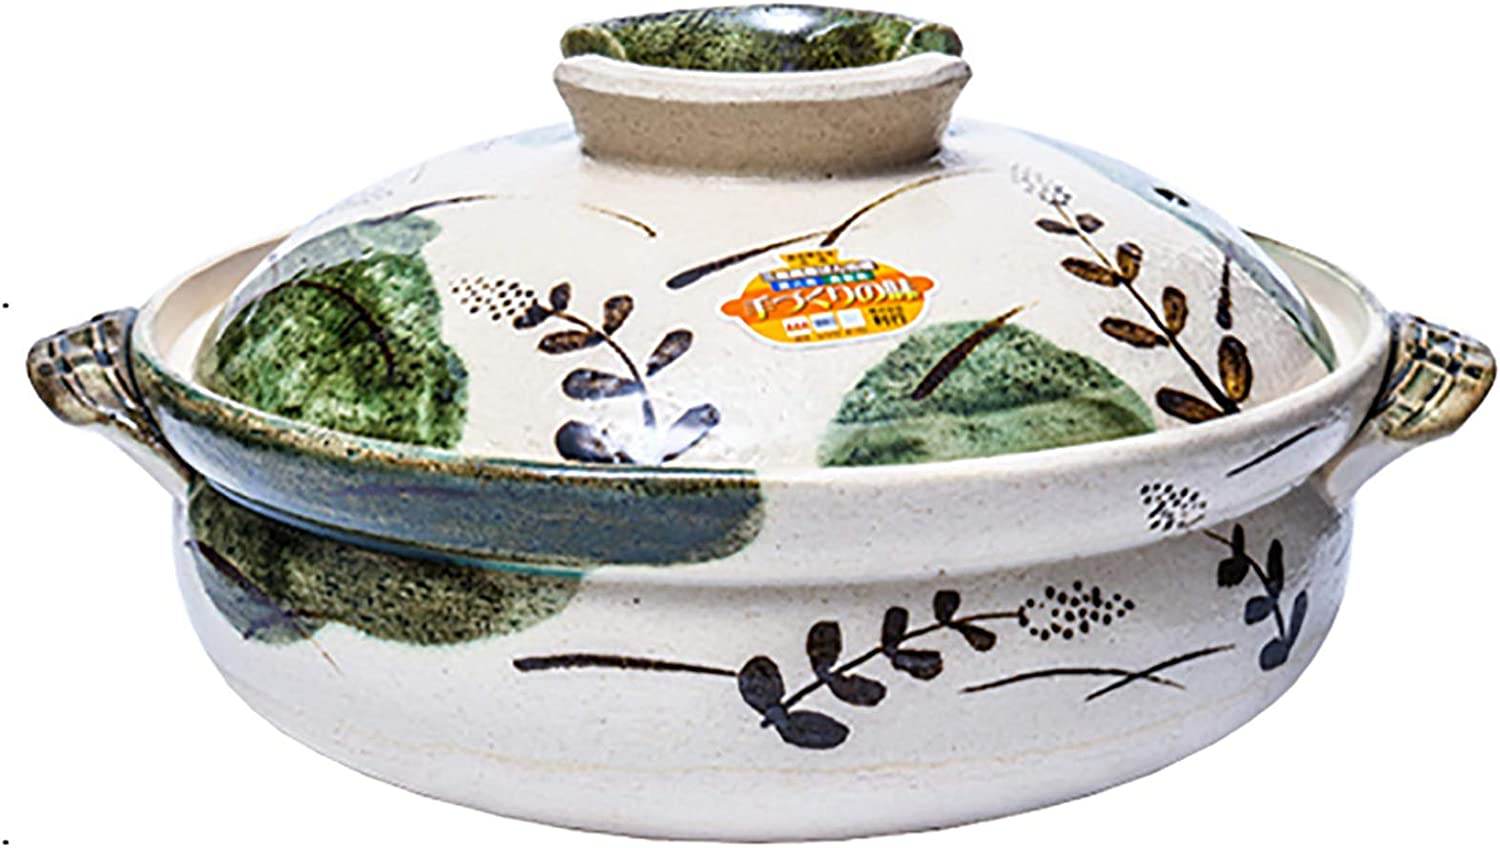 BB&UU Clay Pot for Cooking,Round Porcelain Hot Pot Casserole,Korean Earthenware Pot with Lid,Made in Japan,Authentic Japanese Donabe Rice Pot-Leaf Pattern 18.5x6.7cm(7x3inch)